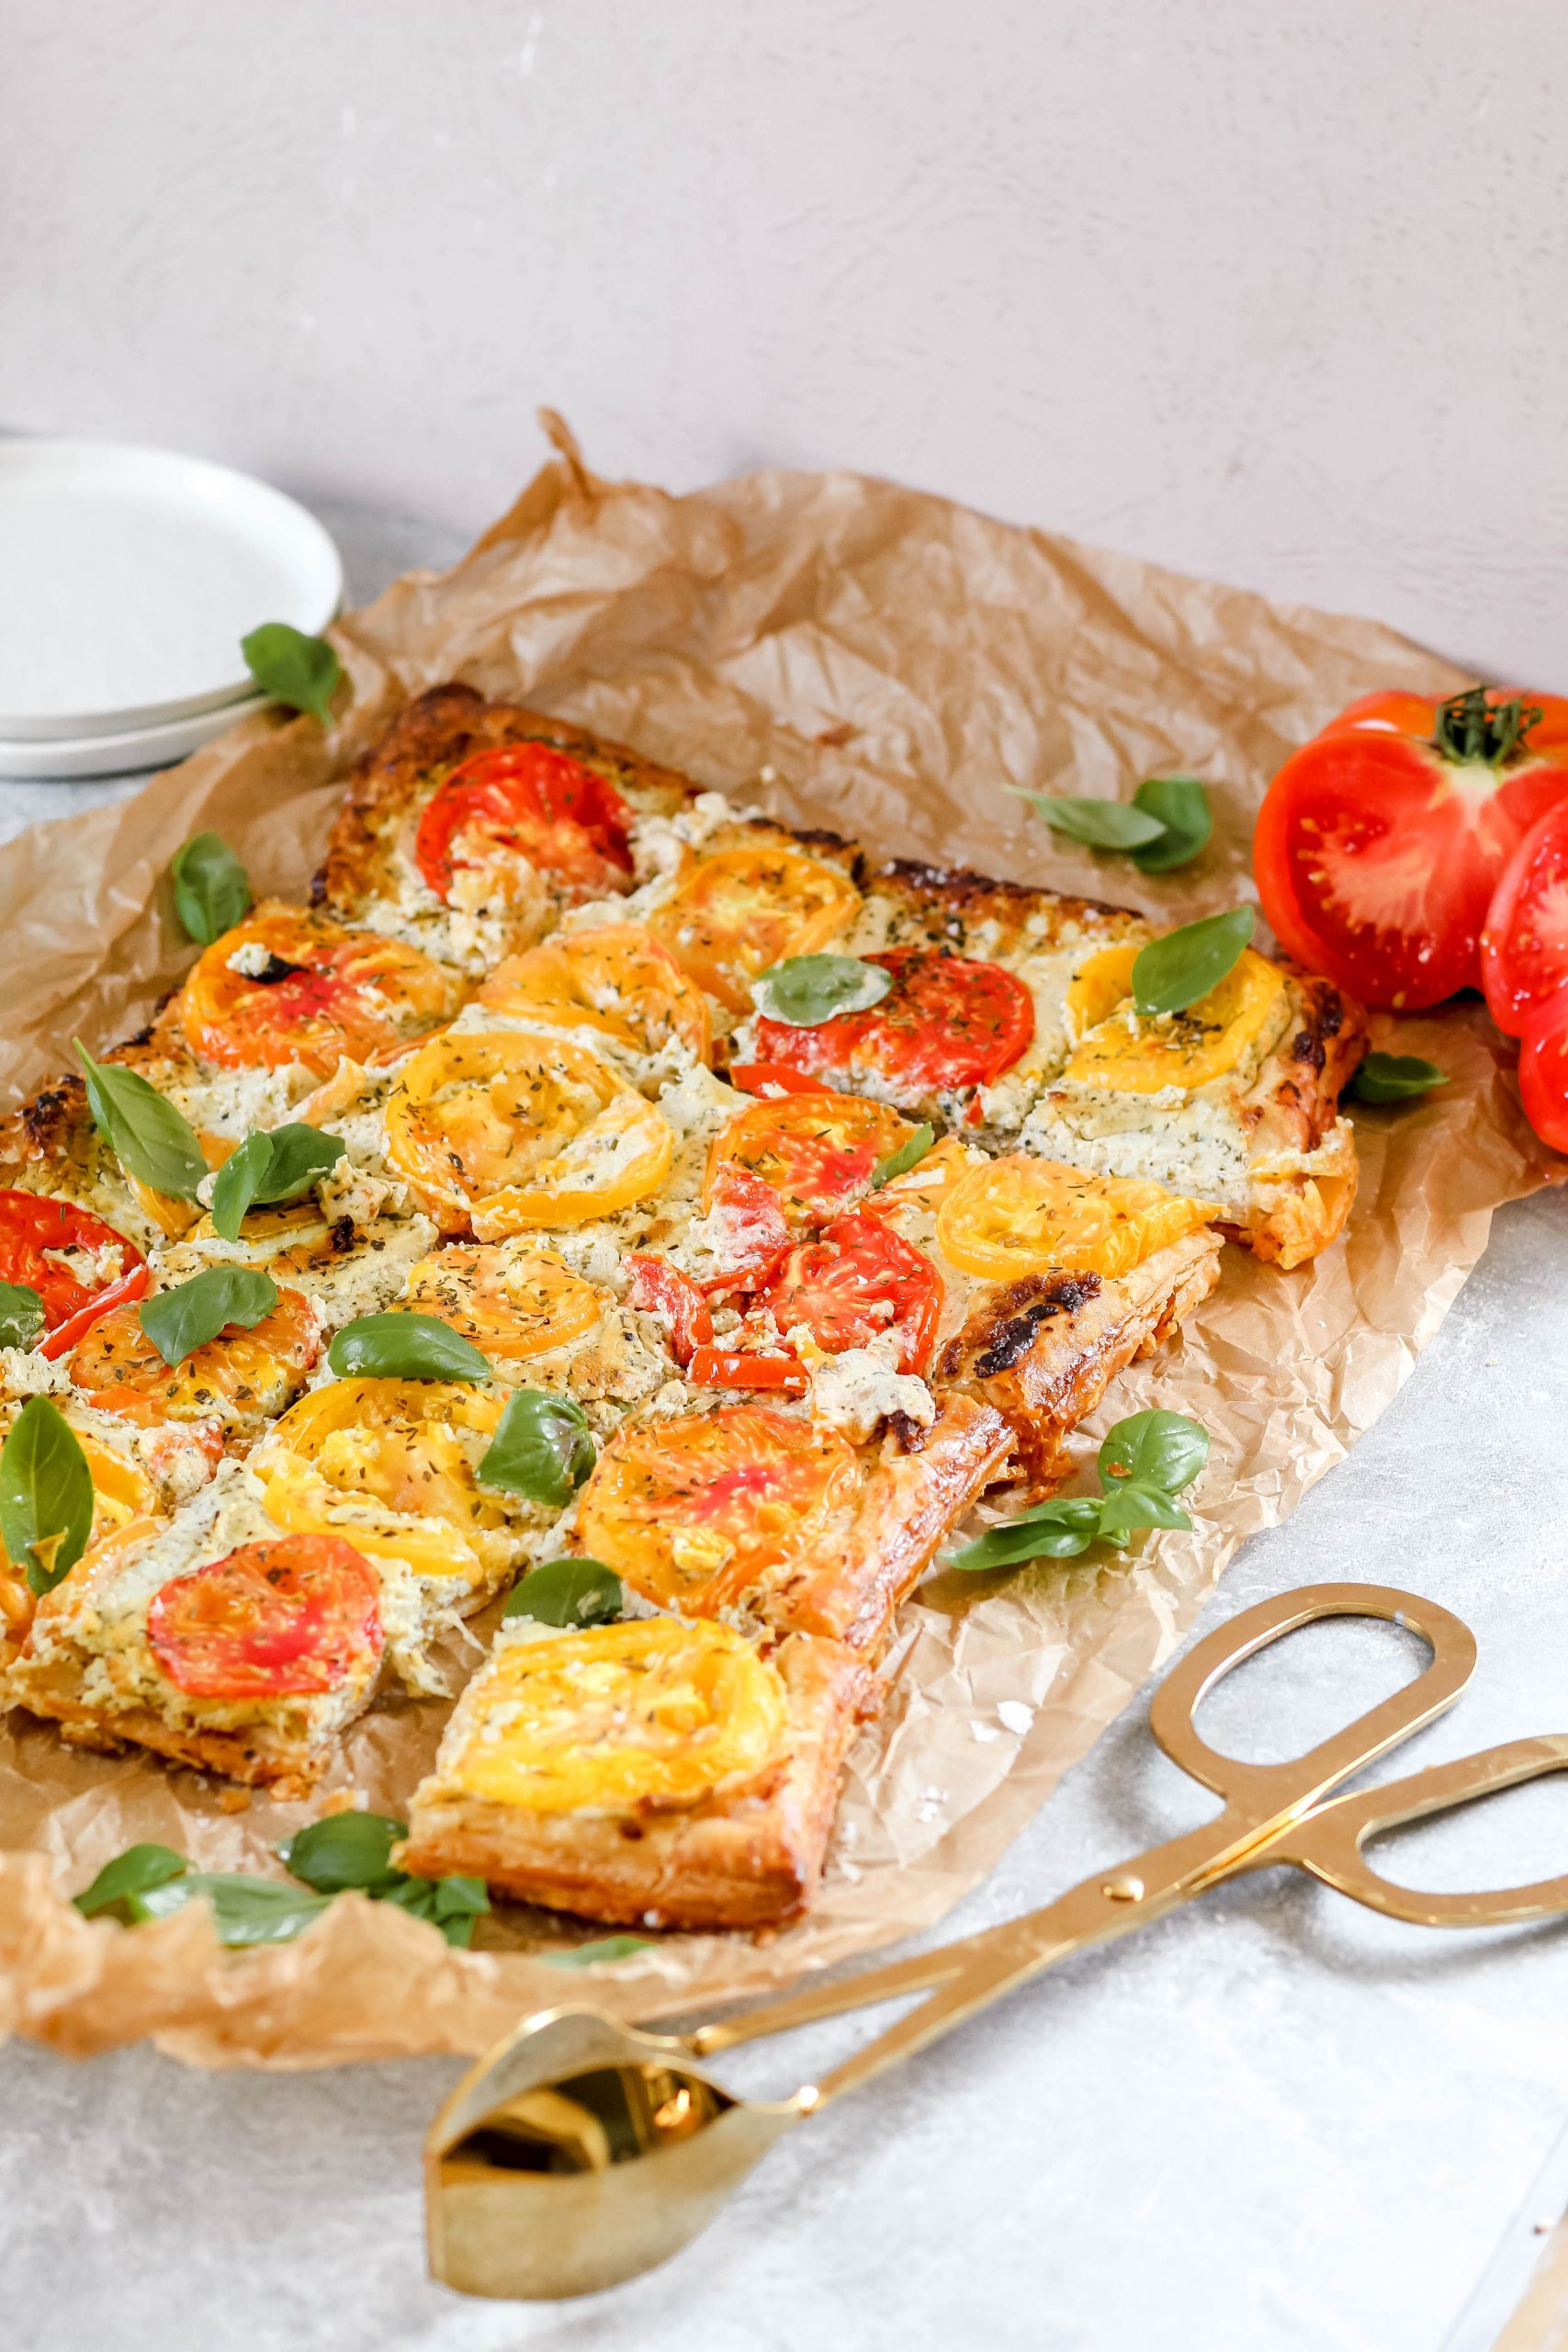 Heirloom Tomato Tart with Pesto-Whipped Goat Cheese